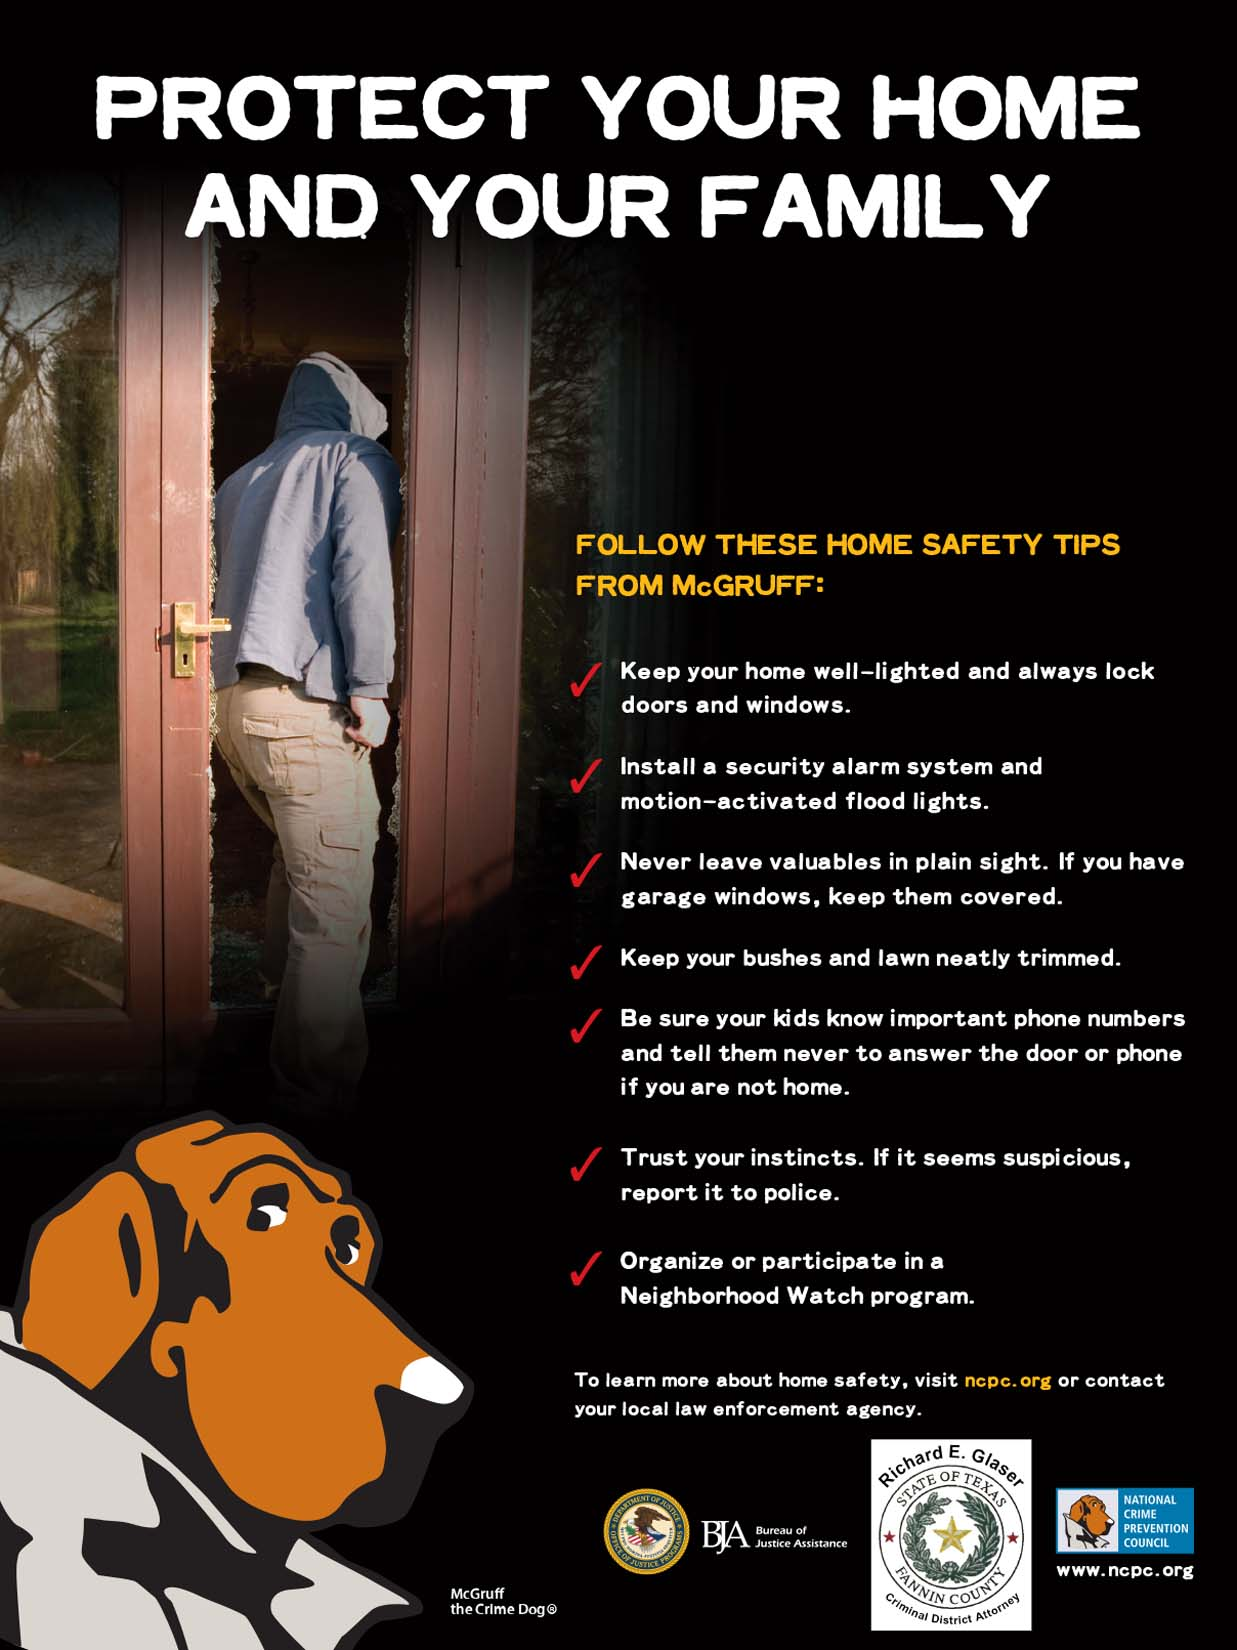 Protect Your Home and Your Family (Home Safety) / Proteja a Su Familia y su Hogar